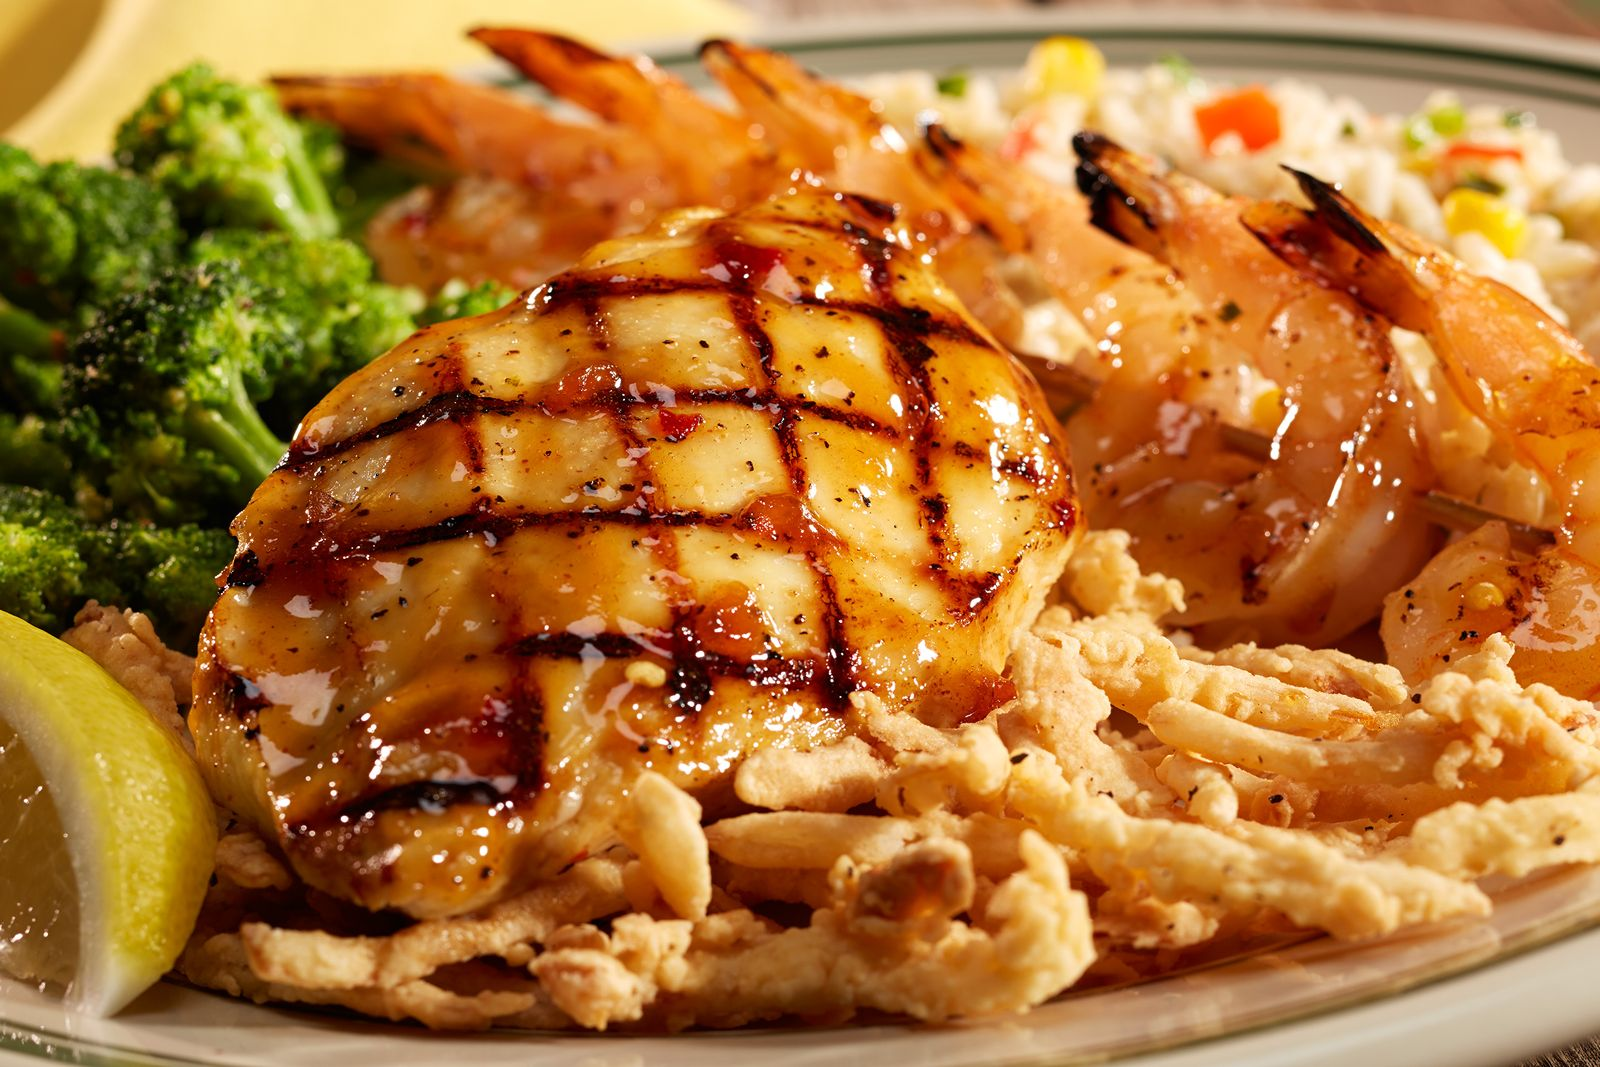 Bennigan's Paddy's Grilled Chicken & Shrimp